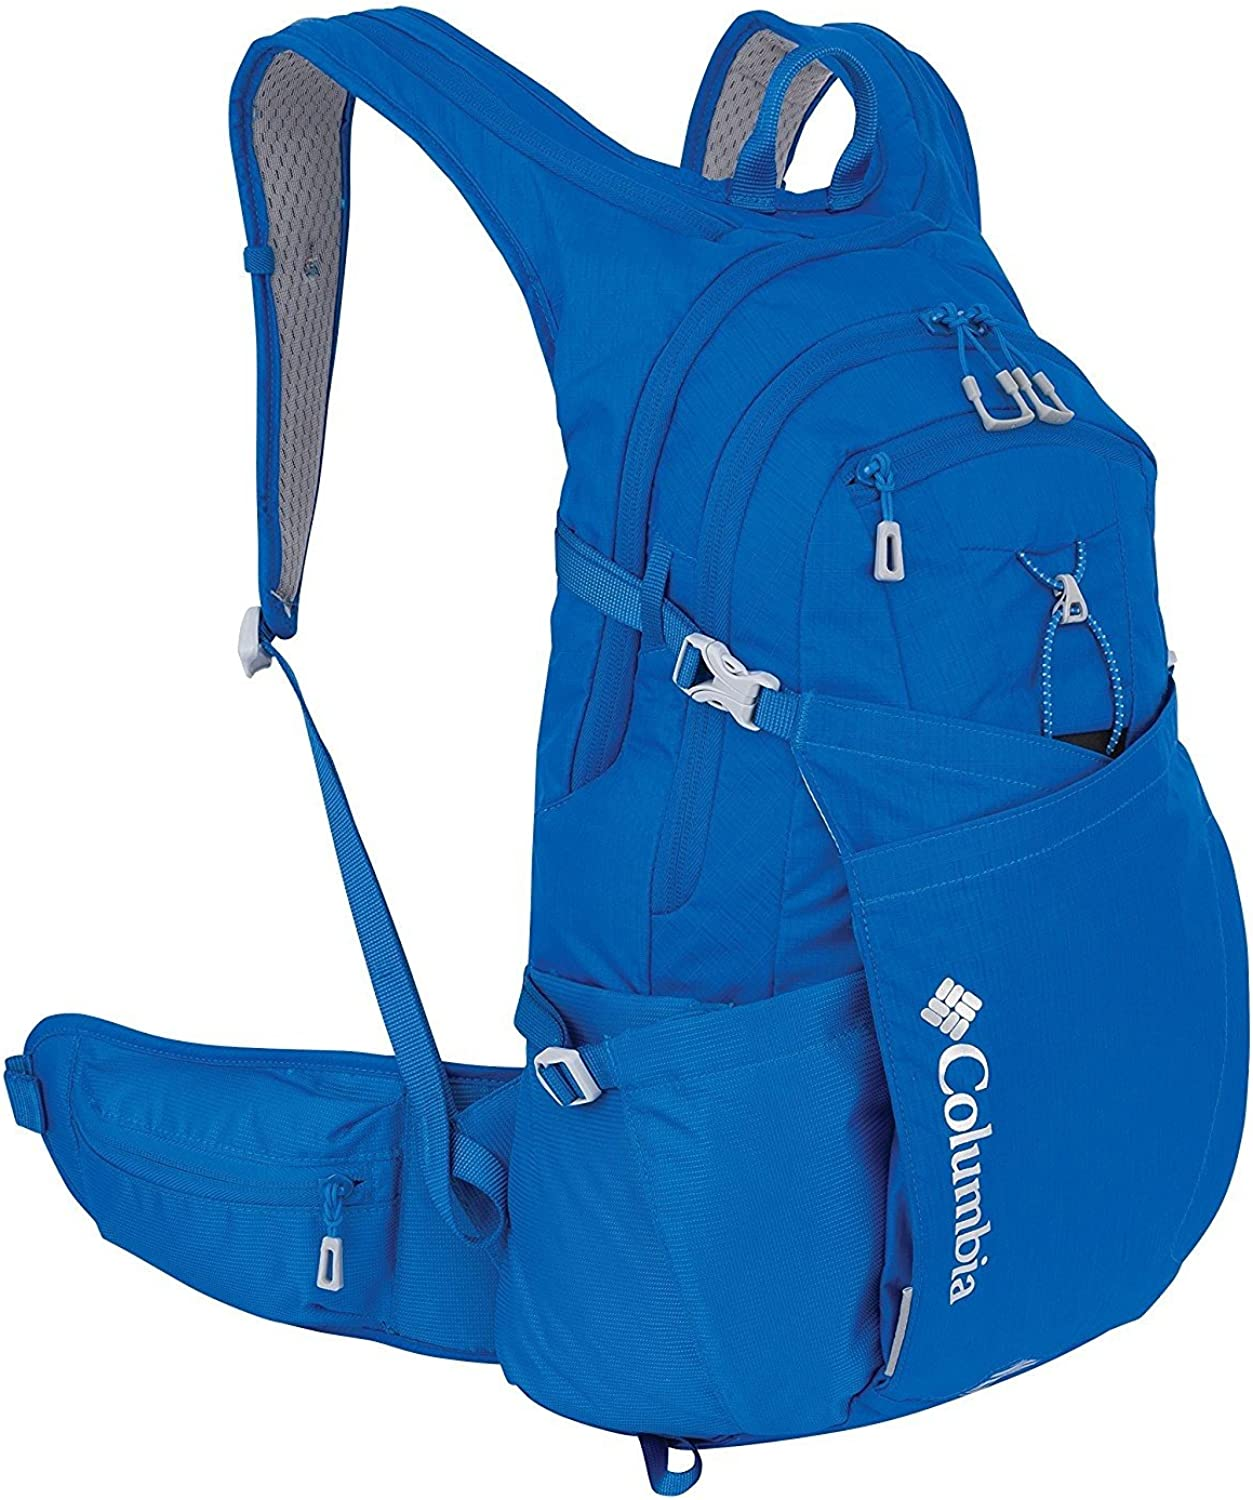 Columbia Kings River Hydration Pack, BLUE MOON